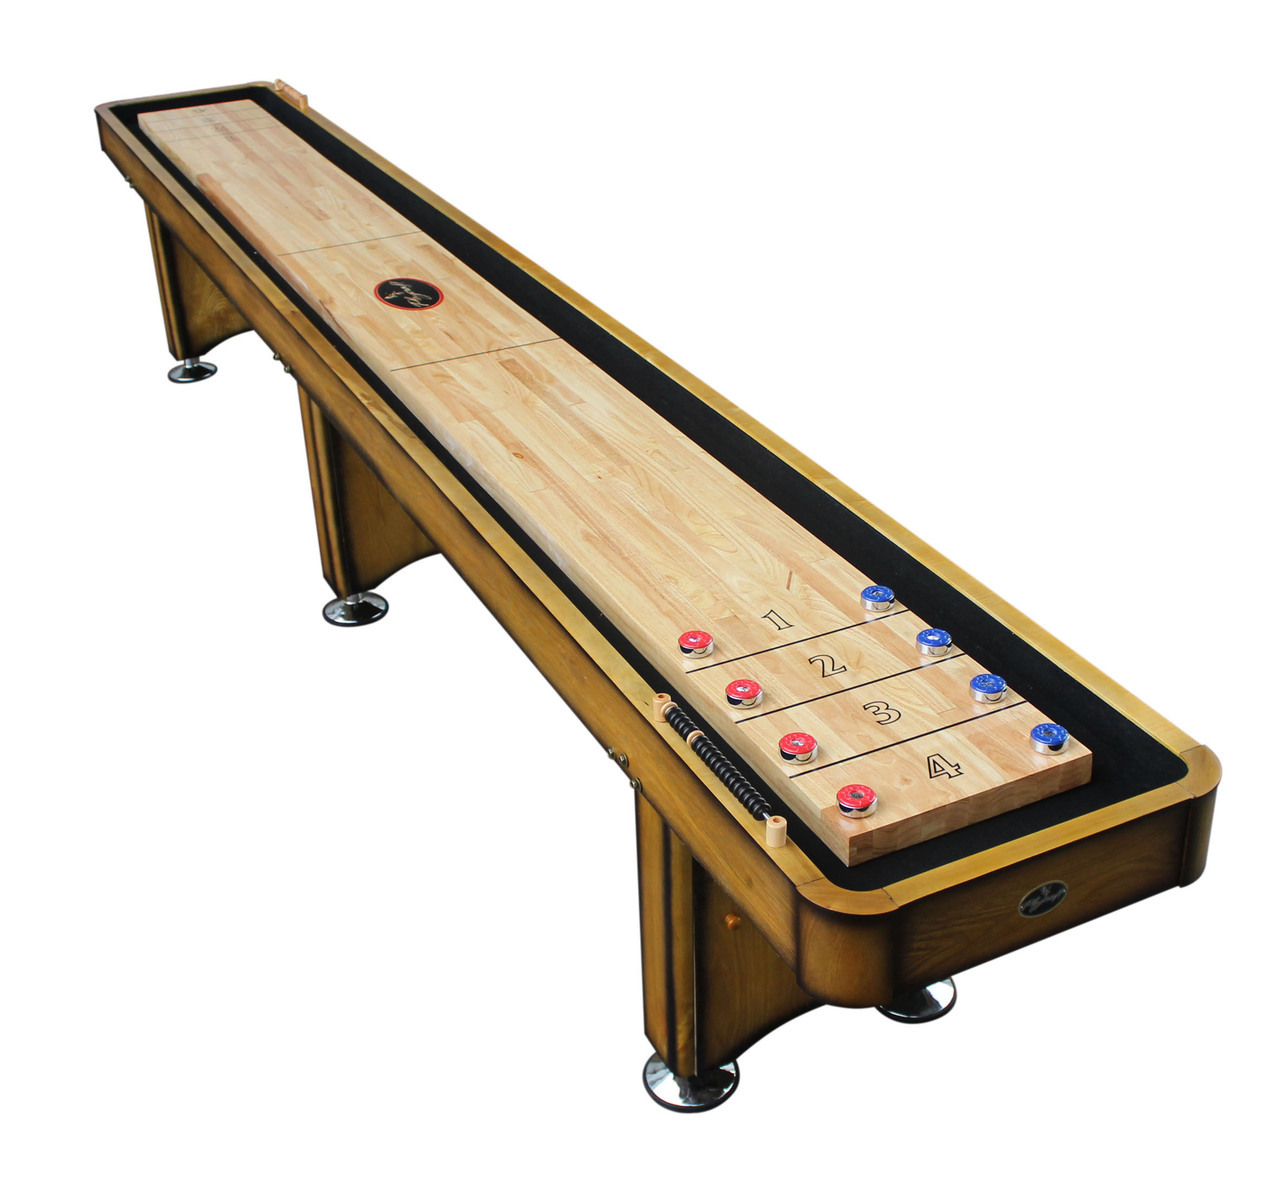 The Georgetown wooden traditional game shuffleboard table for sale